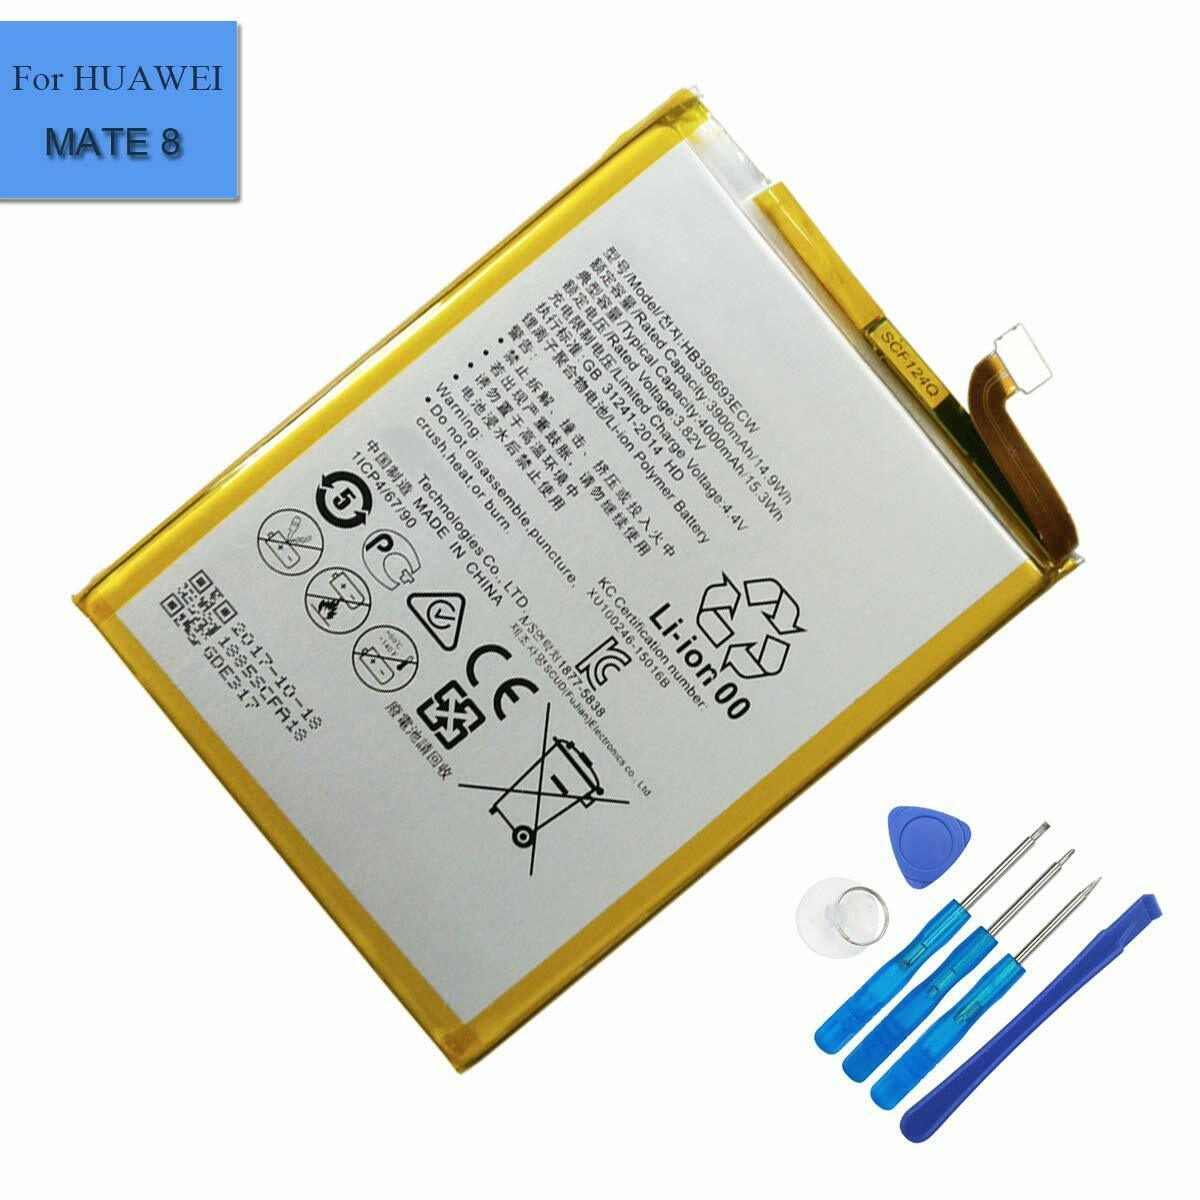 New HB396693ECW Battery For HUAWEI MATE 8 NXT-AL10 NXT-CL00 NXT-L09 NXT-L29 Tool - $11.99